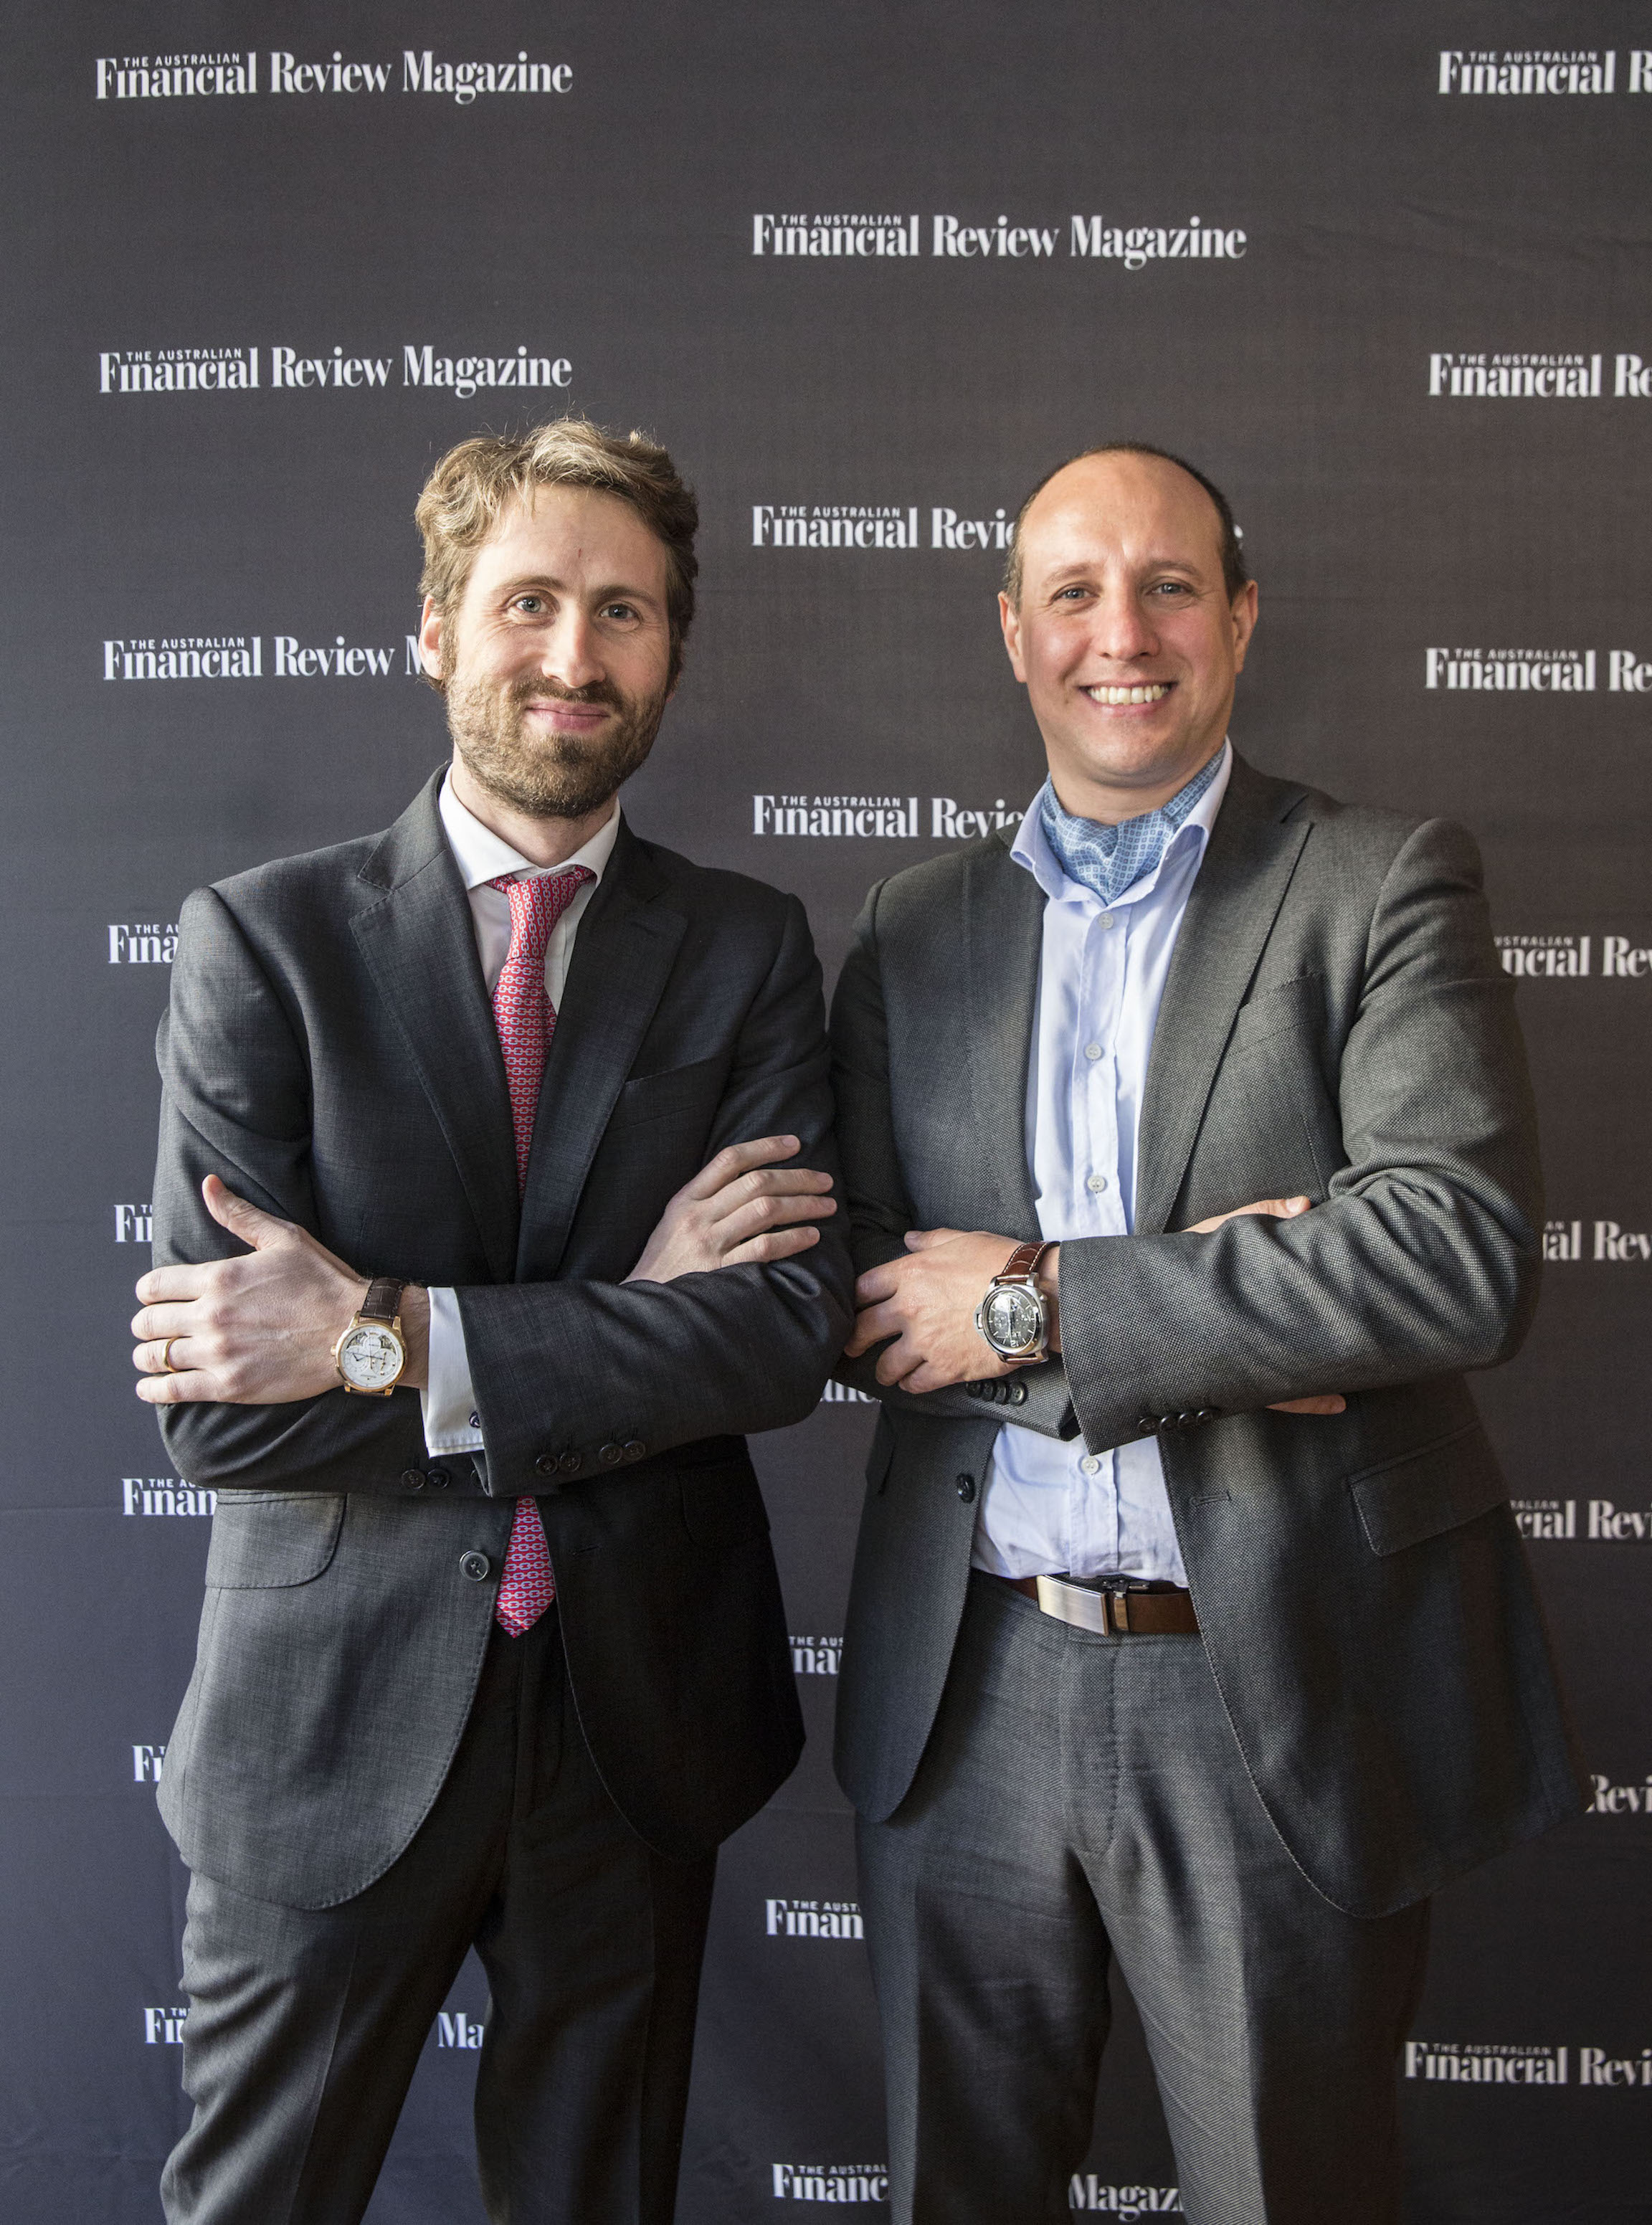 Inigo Ohlsson from Jaeger-LeCoultre and Ruggero Pirrotta from Panerai attend the AFR Watch issue launch at 44 Bridge Street on July 27, 2016 in Sydney, Australia. (Photo by Jessica Hromas:Fairfax Media)